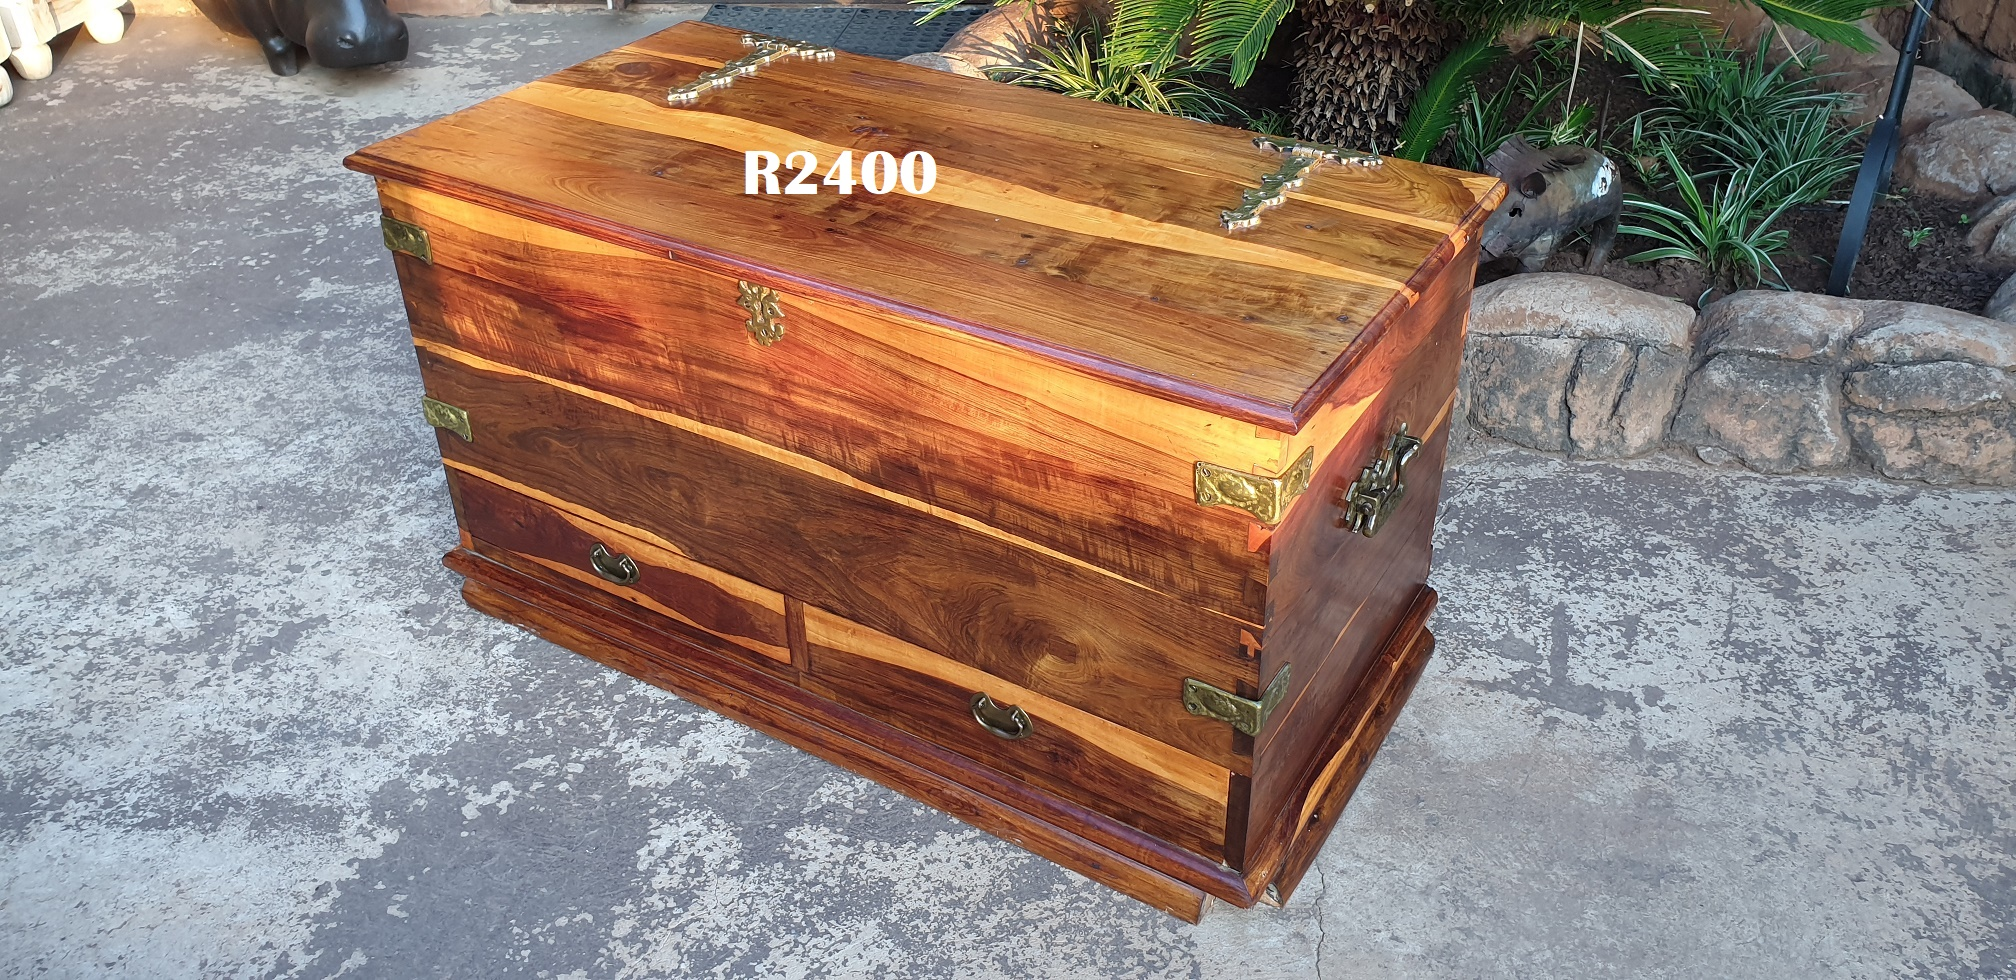 Classic Teak Trousseau Kist with 2 Drawers and Solid Brass Trimmings (1110x550x590)